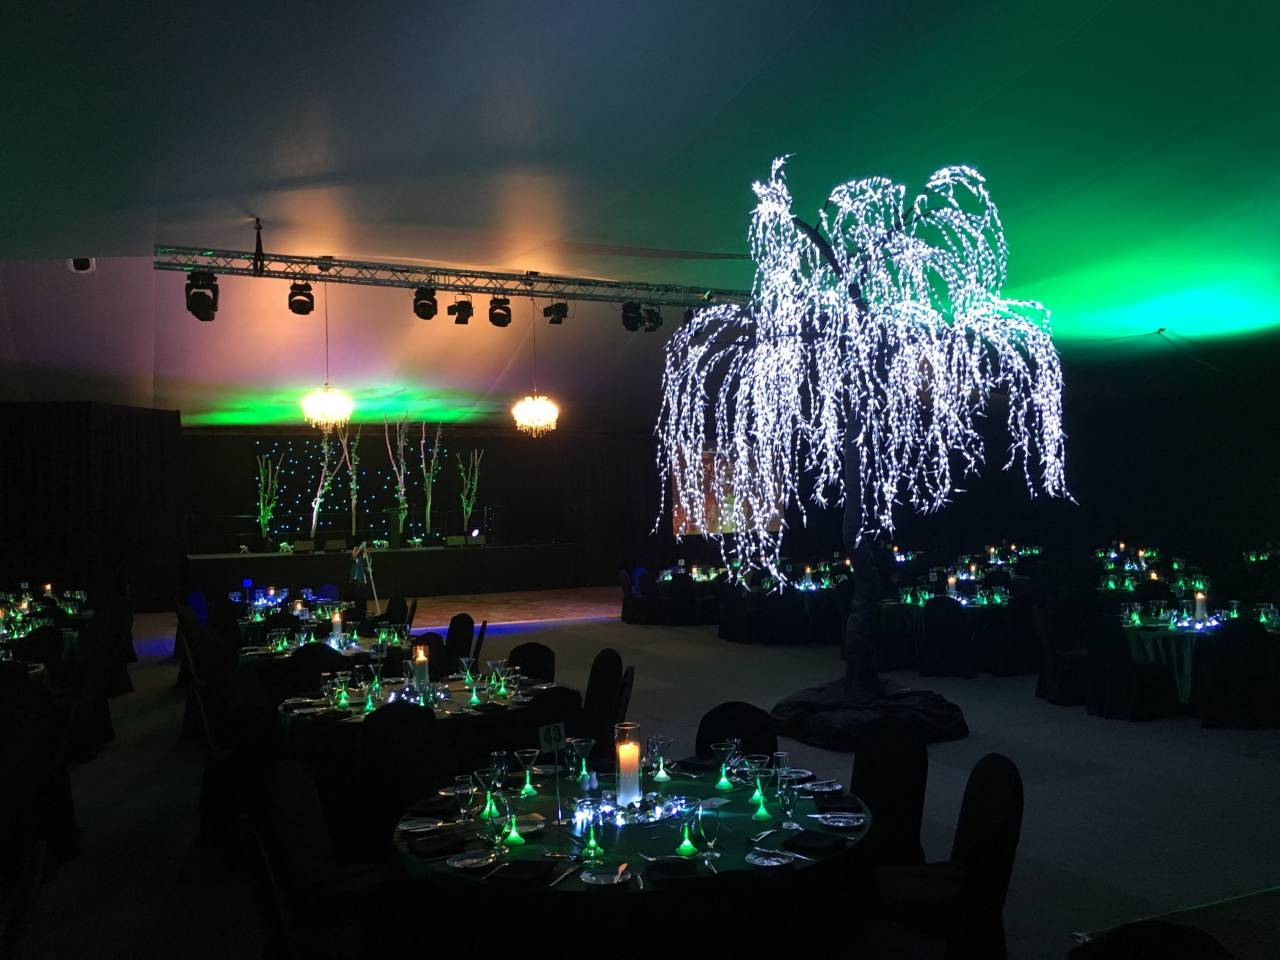 Lights And Special Effects Inside The Venue.